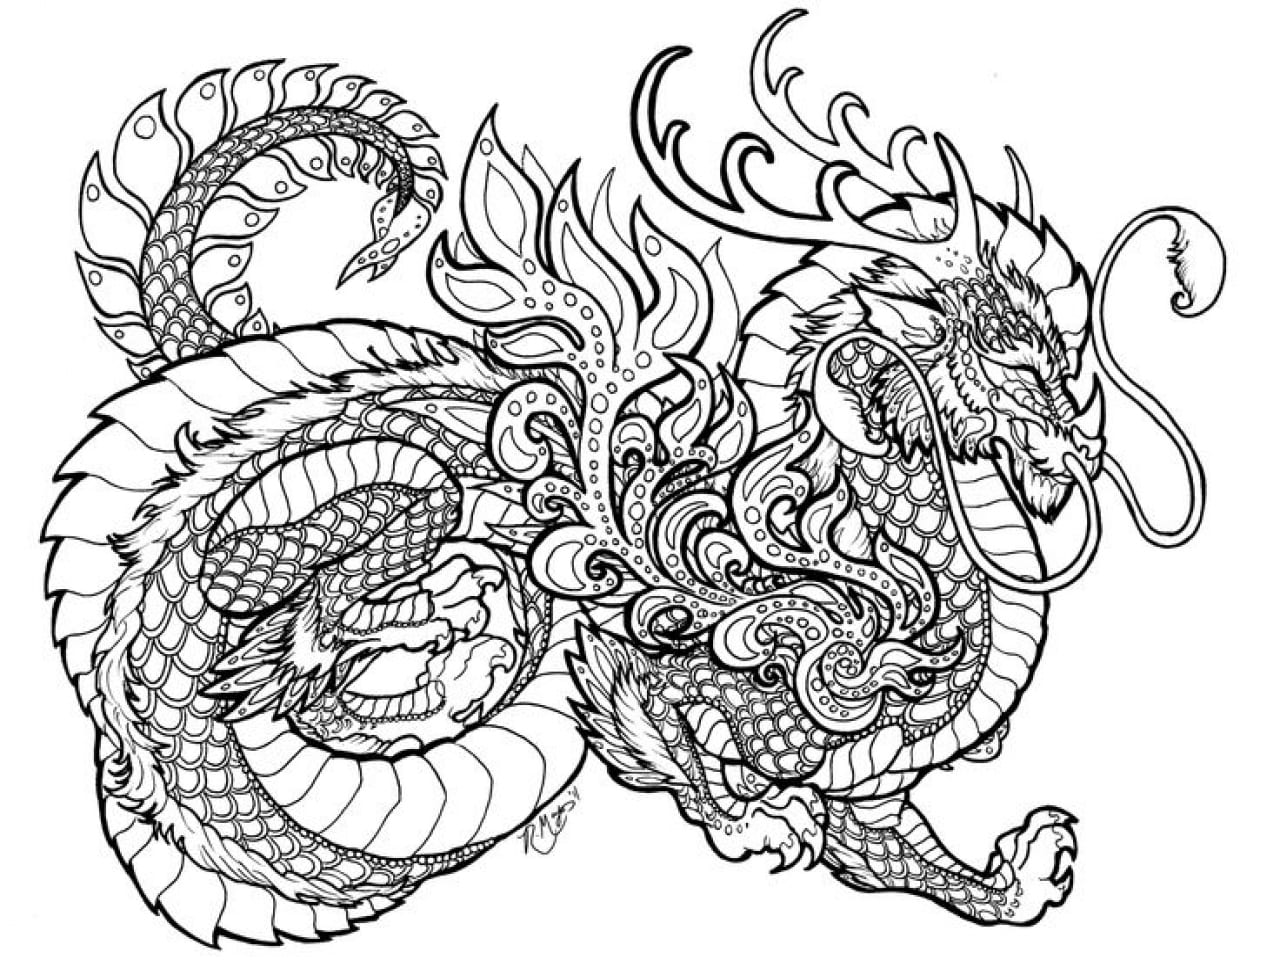 Coloring Pages of Dragons. 100 Free Black and White Images